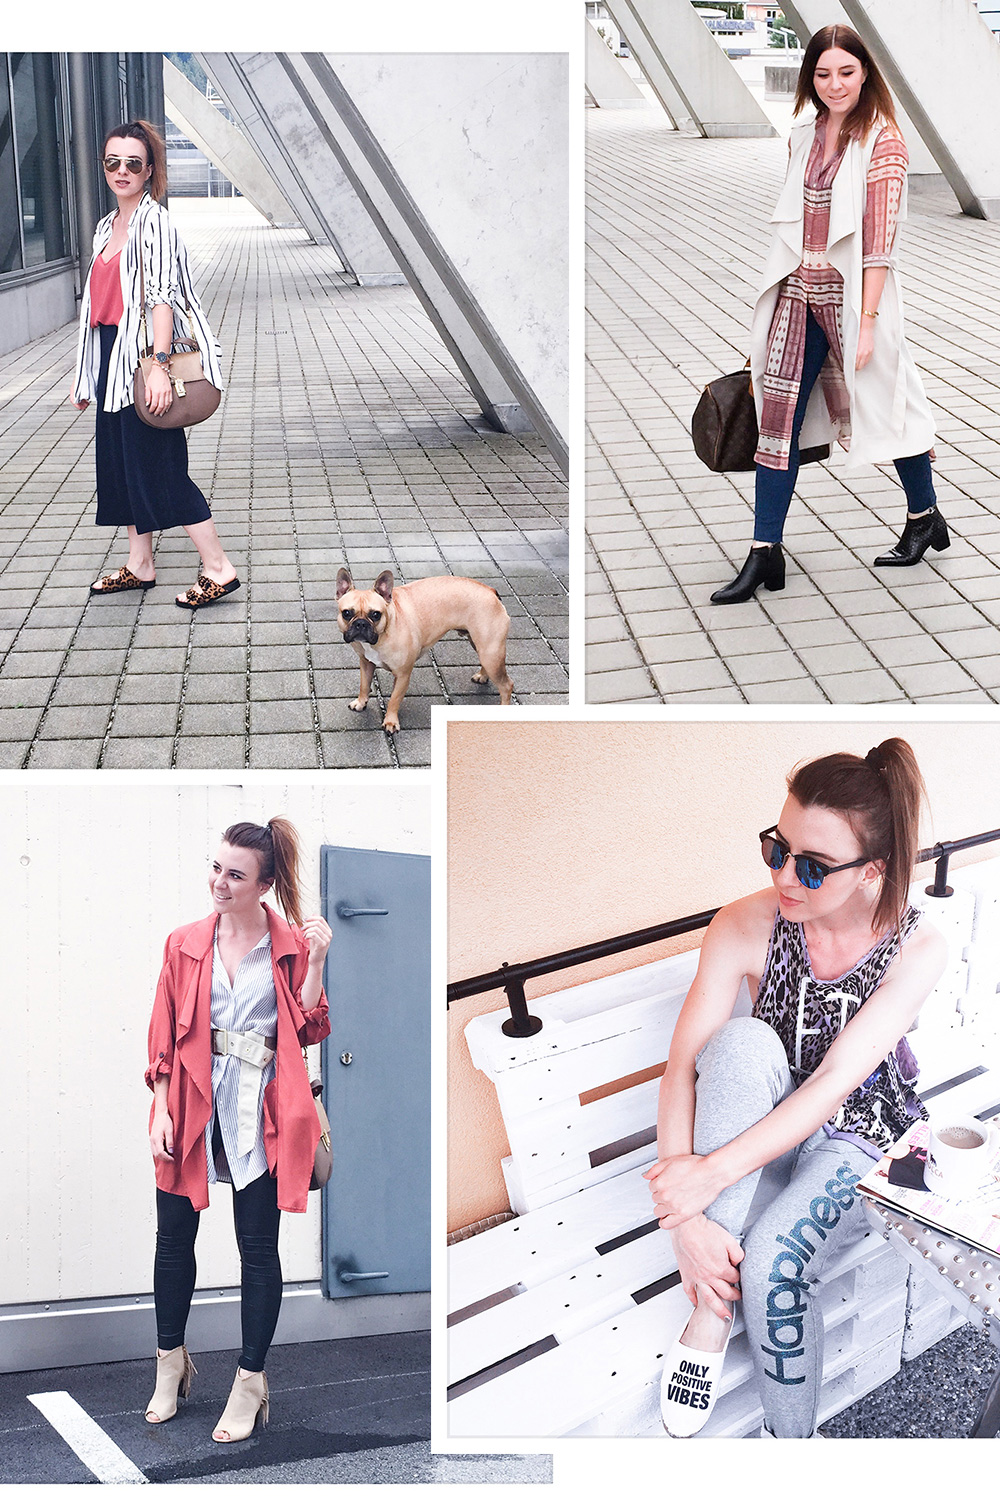 who is mocca, modeblog, tirolblog, modeblog deutschland, fashionblog österreich, fashionblogger, outfit review, ootd inspiration, lookbook, streetstyle, whoismocca.com